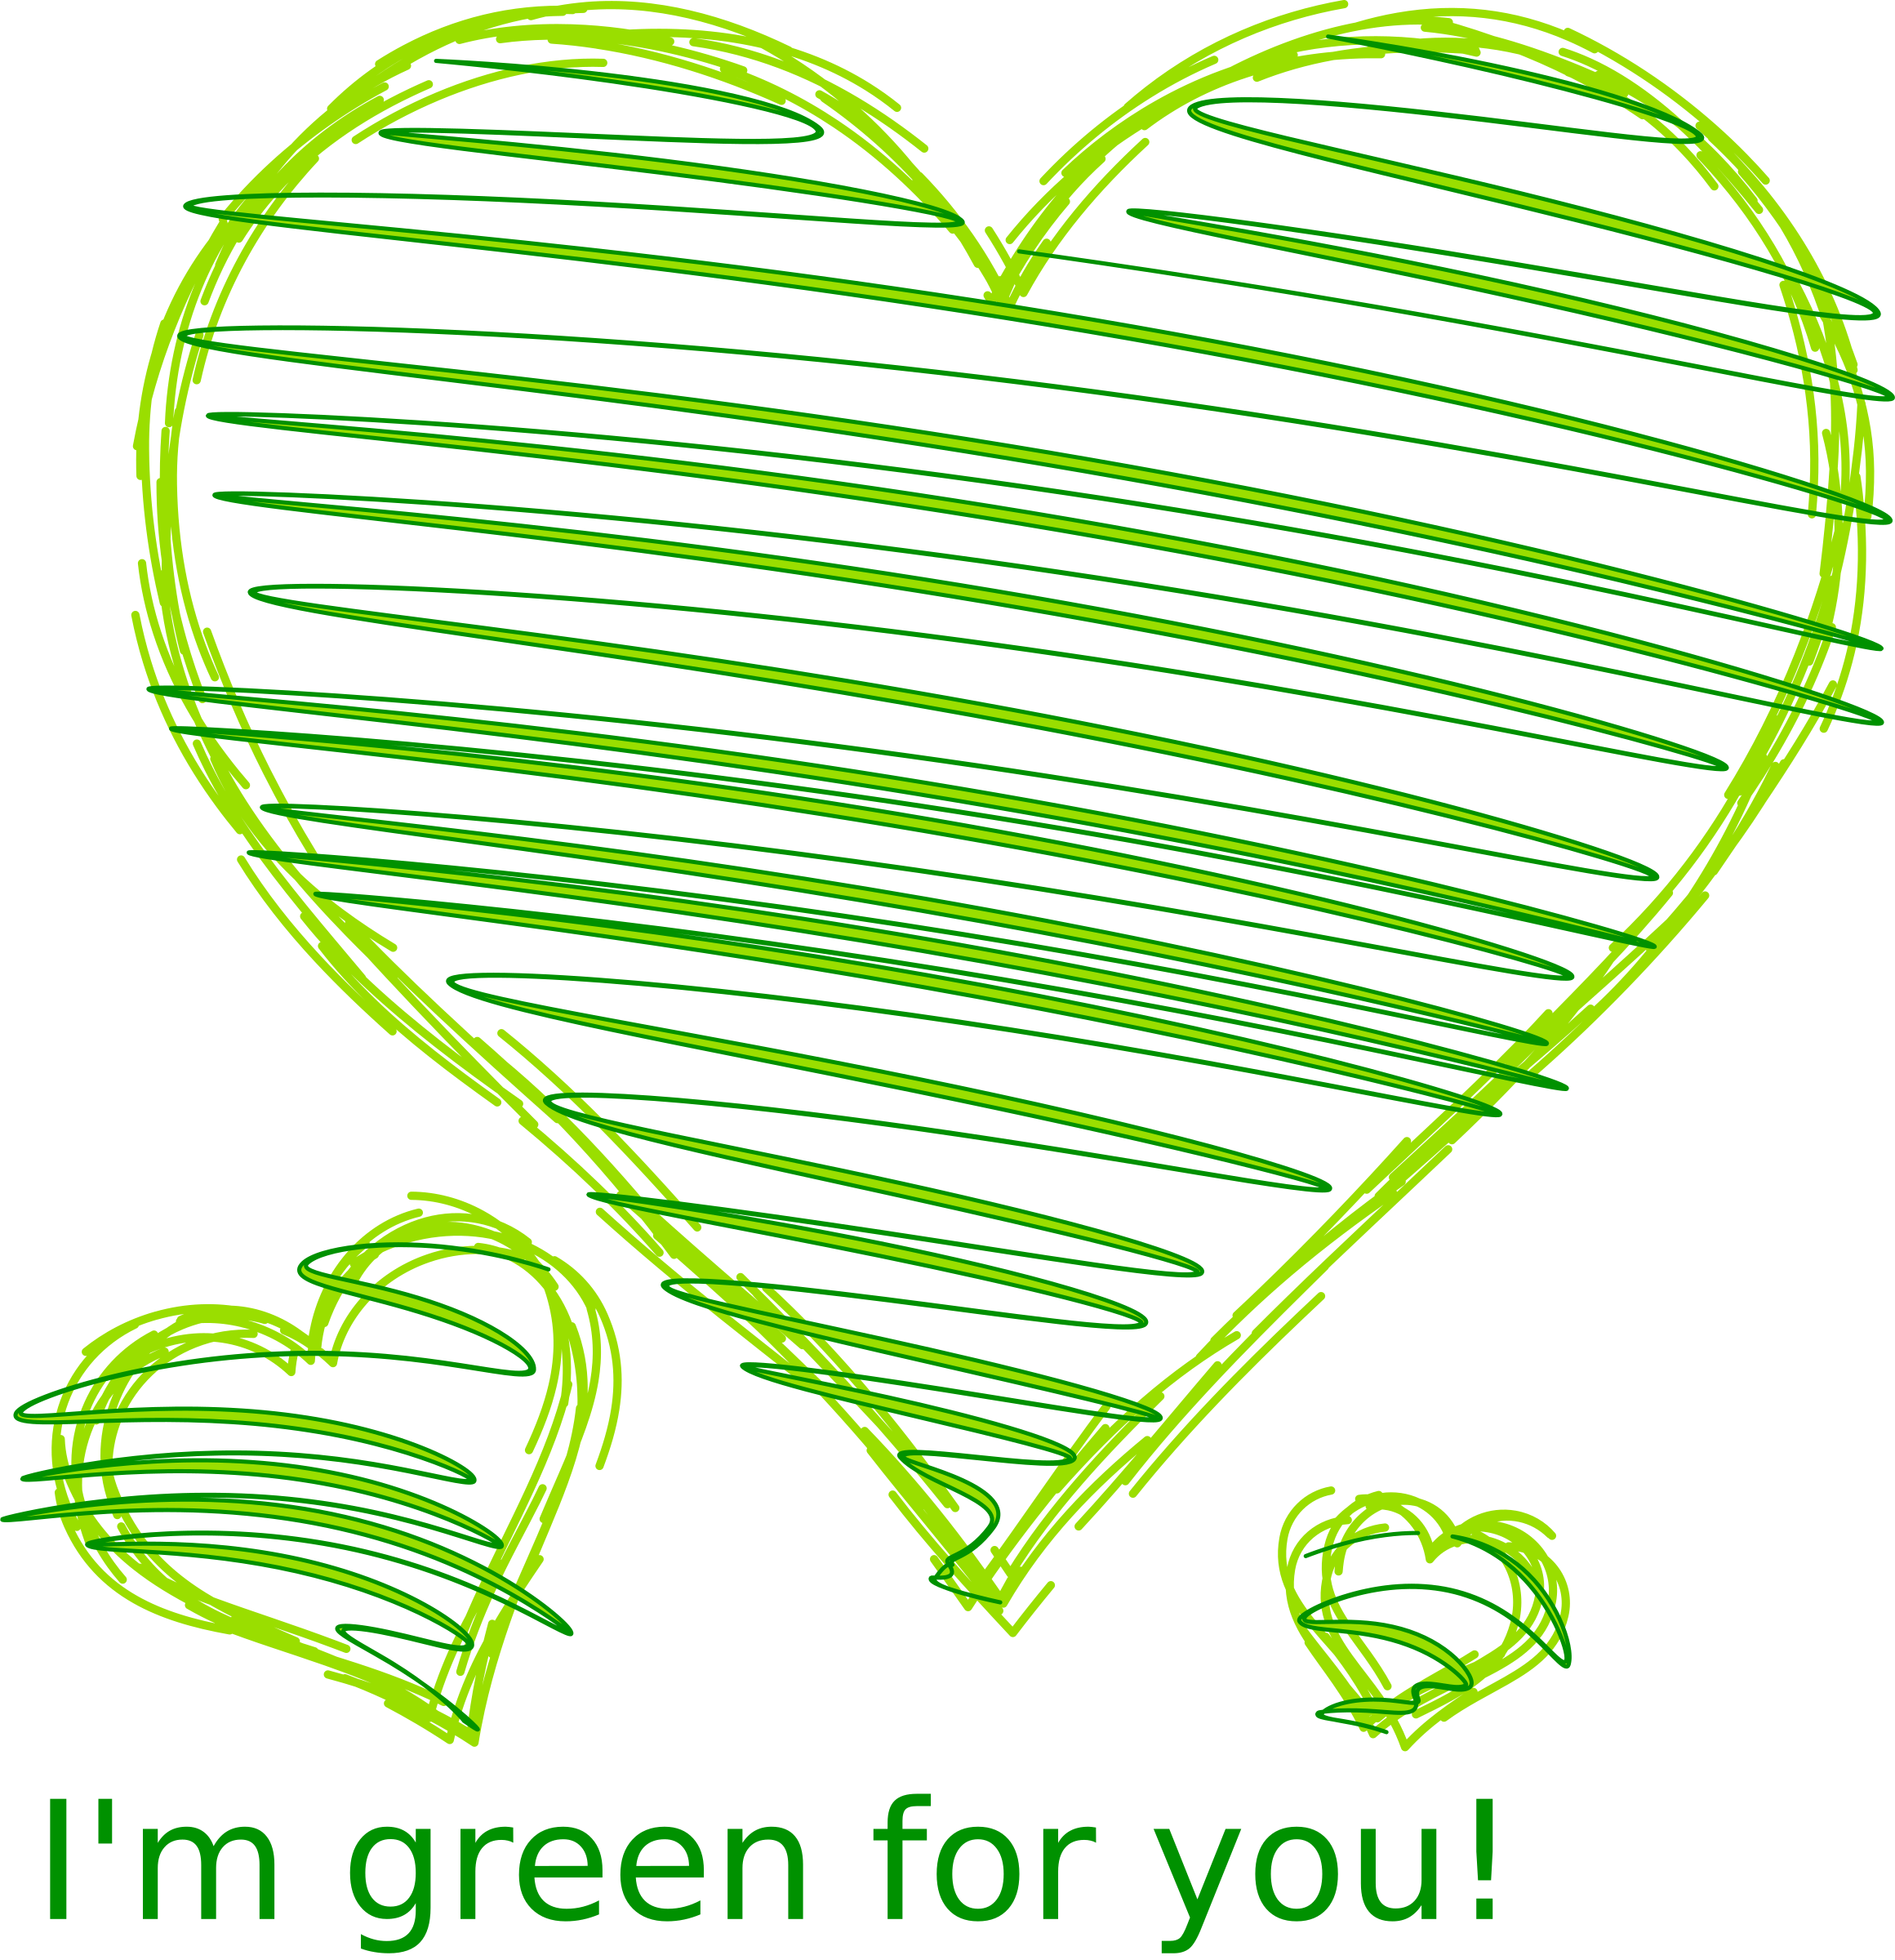 Hearts clipart crayon. I m green for